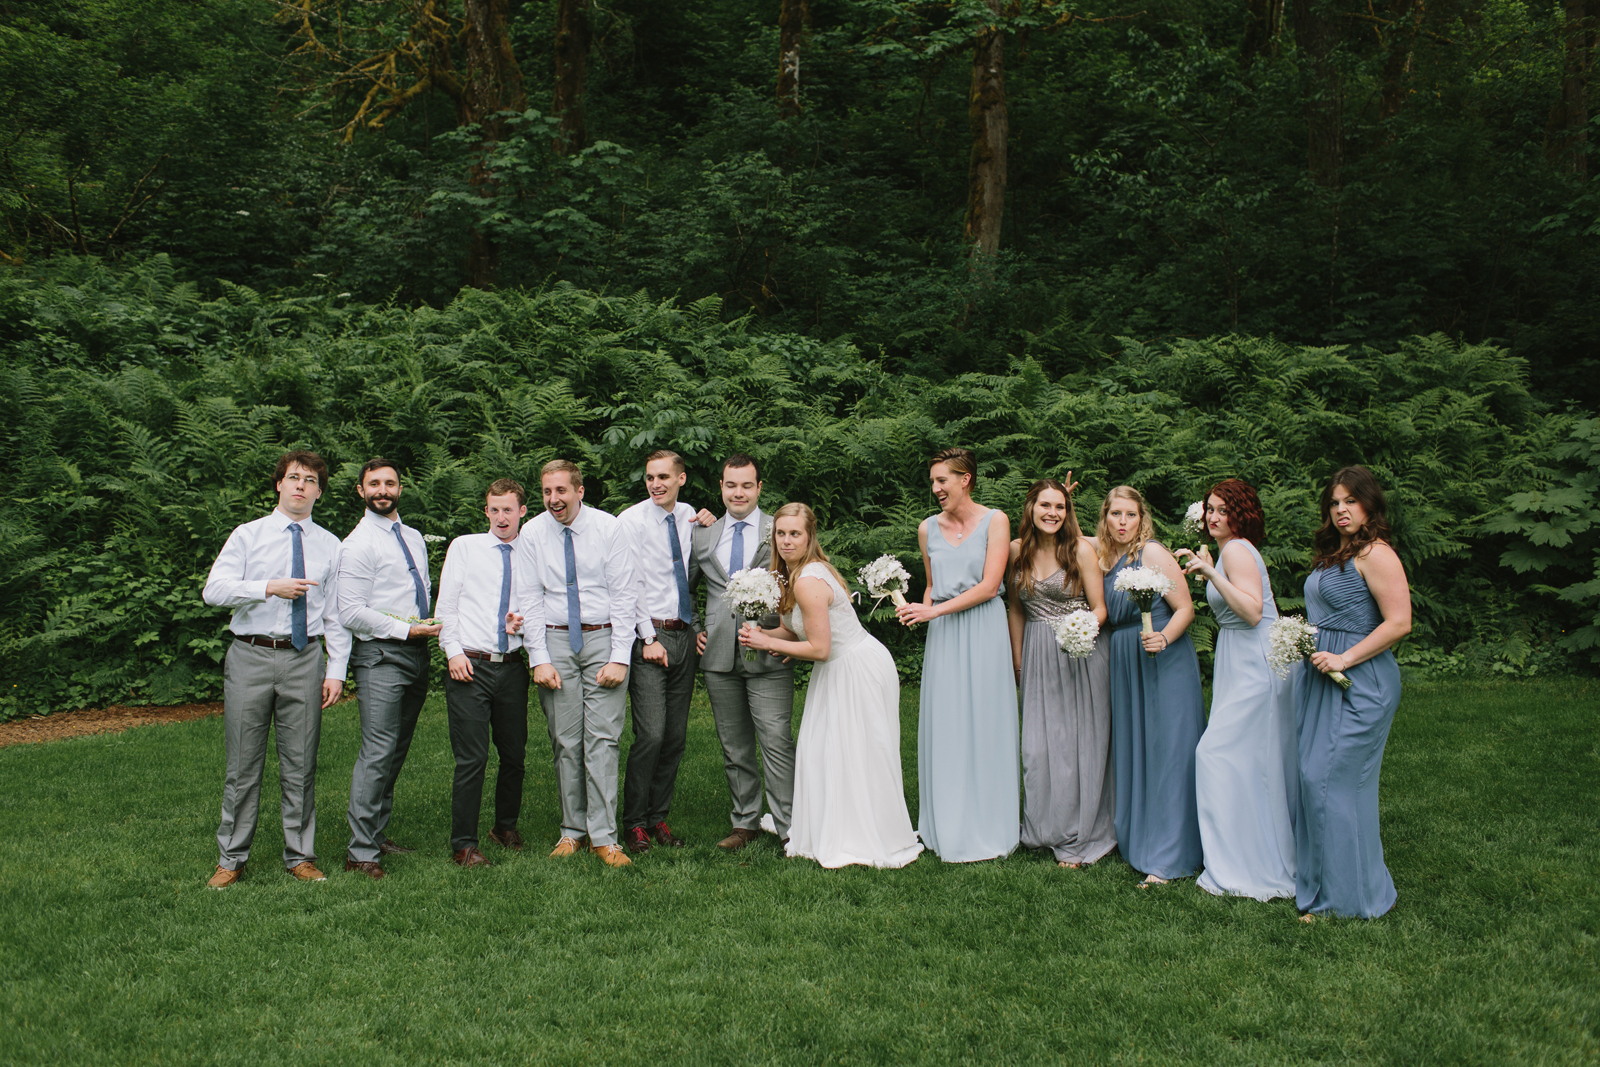 The wedding party takes a goofy photo at Bridal Veil Lakes